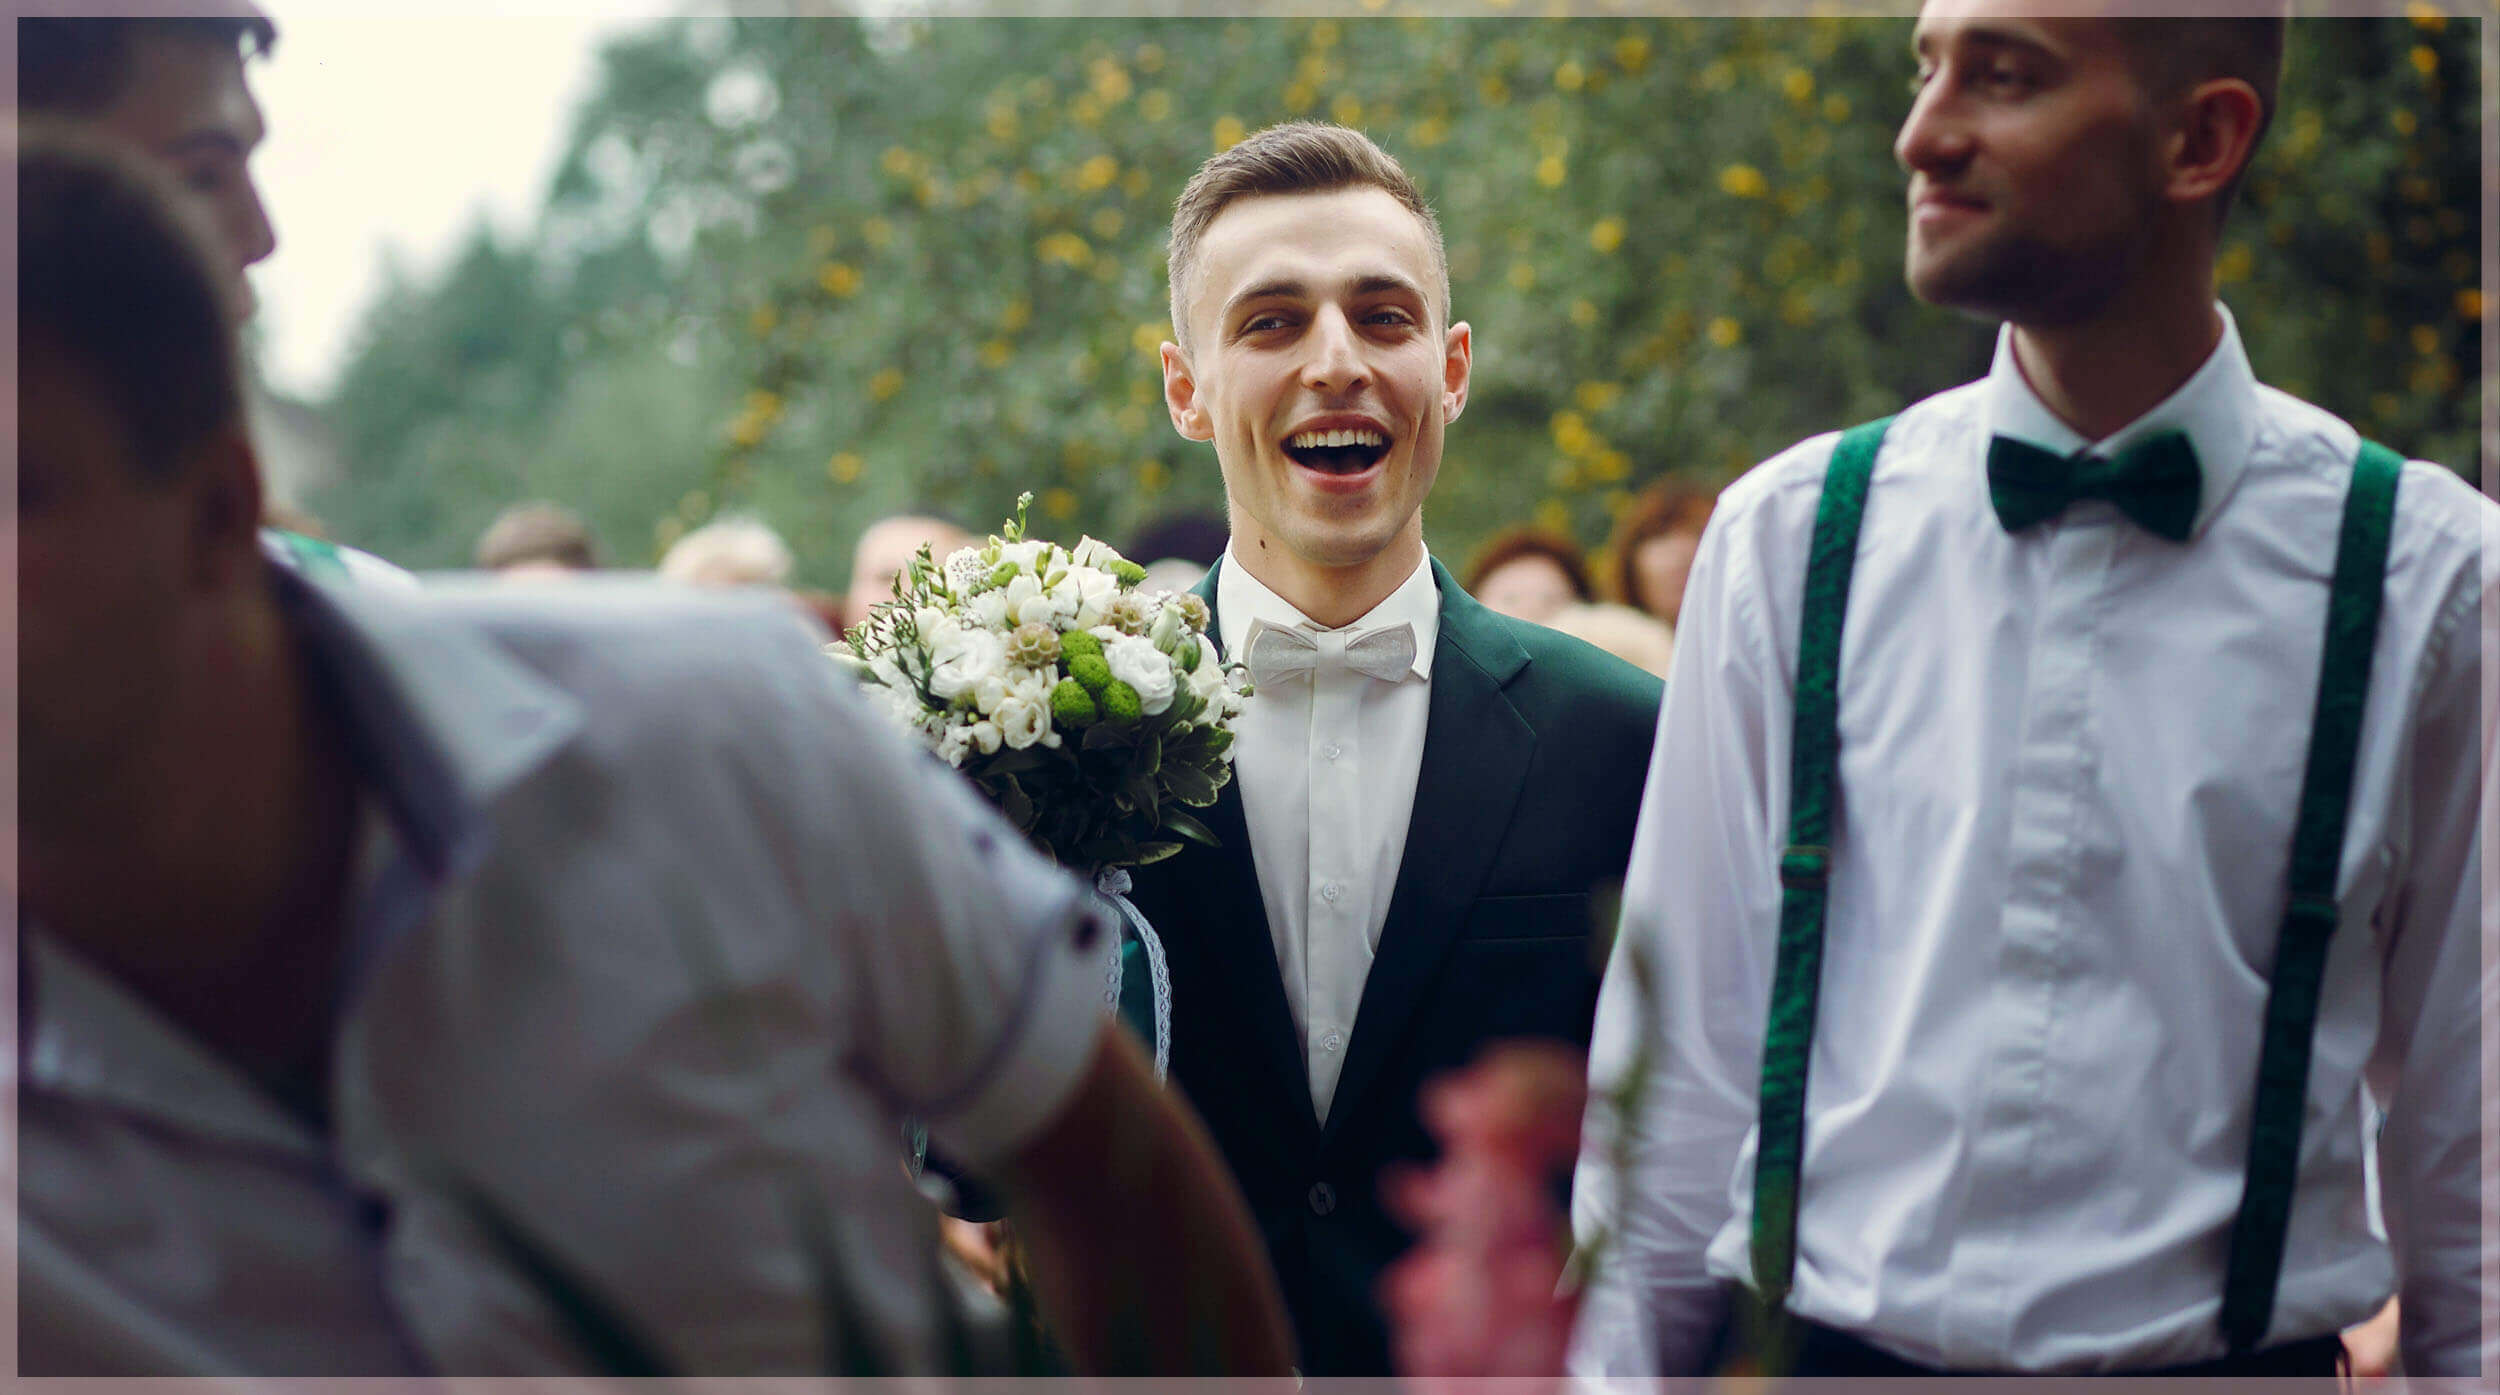 Groom Picture- Grooms laughs while holds the bouquet